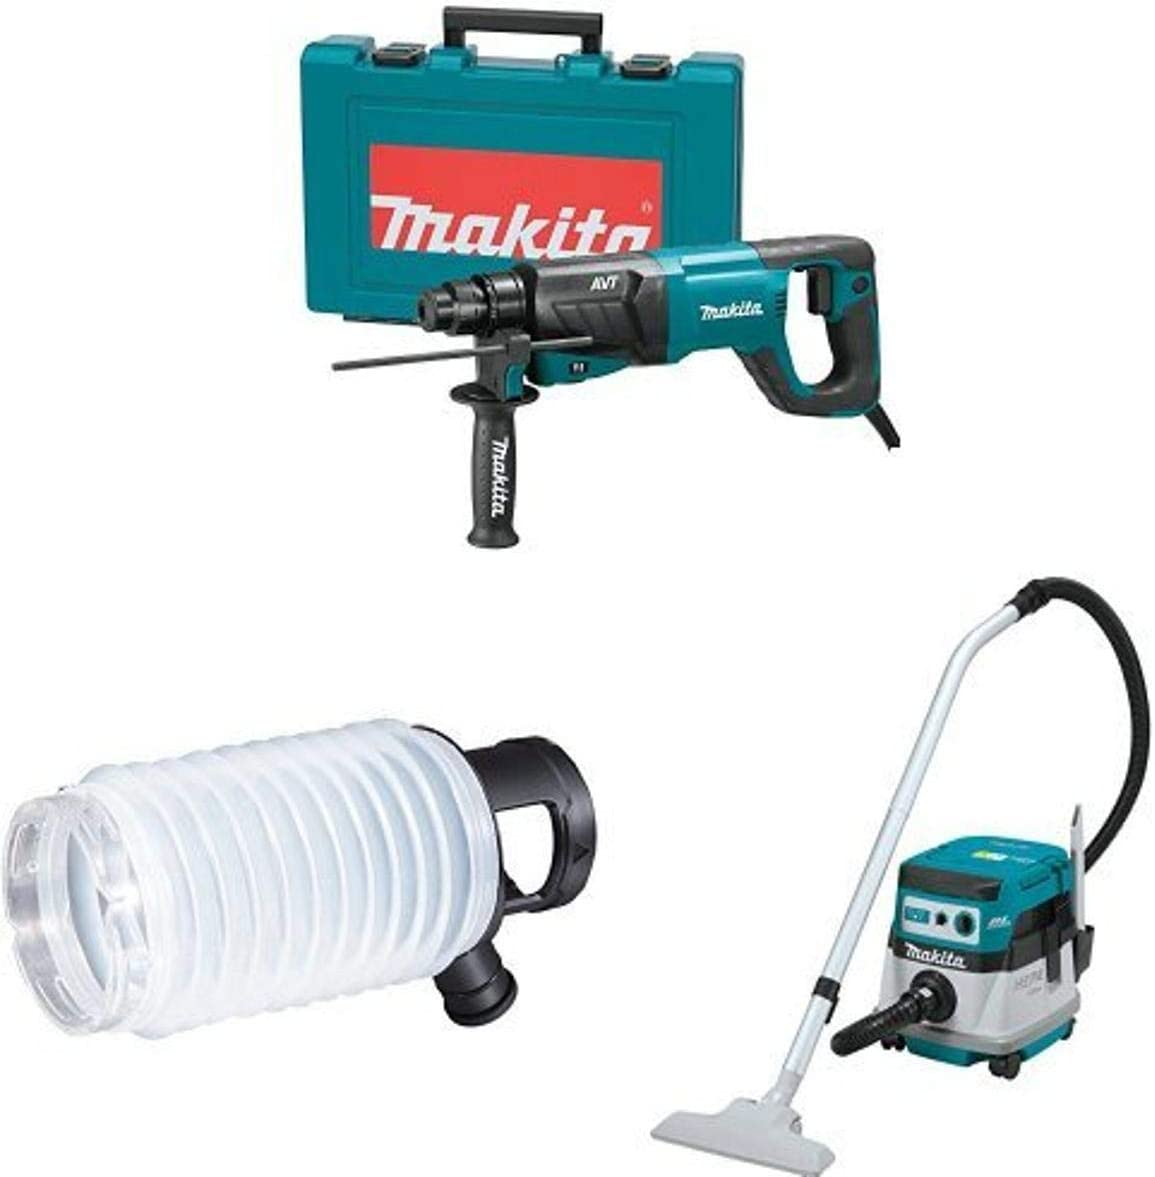 Makita HR2641 1-Inch Bargain sale AVT Rotary SDS-PLUS Bombing free shipping bits Hammer accepts D